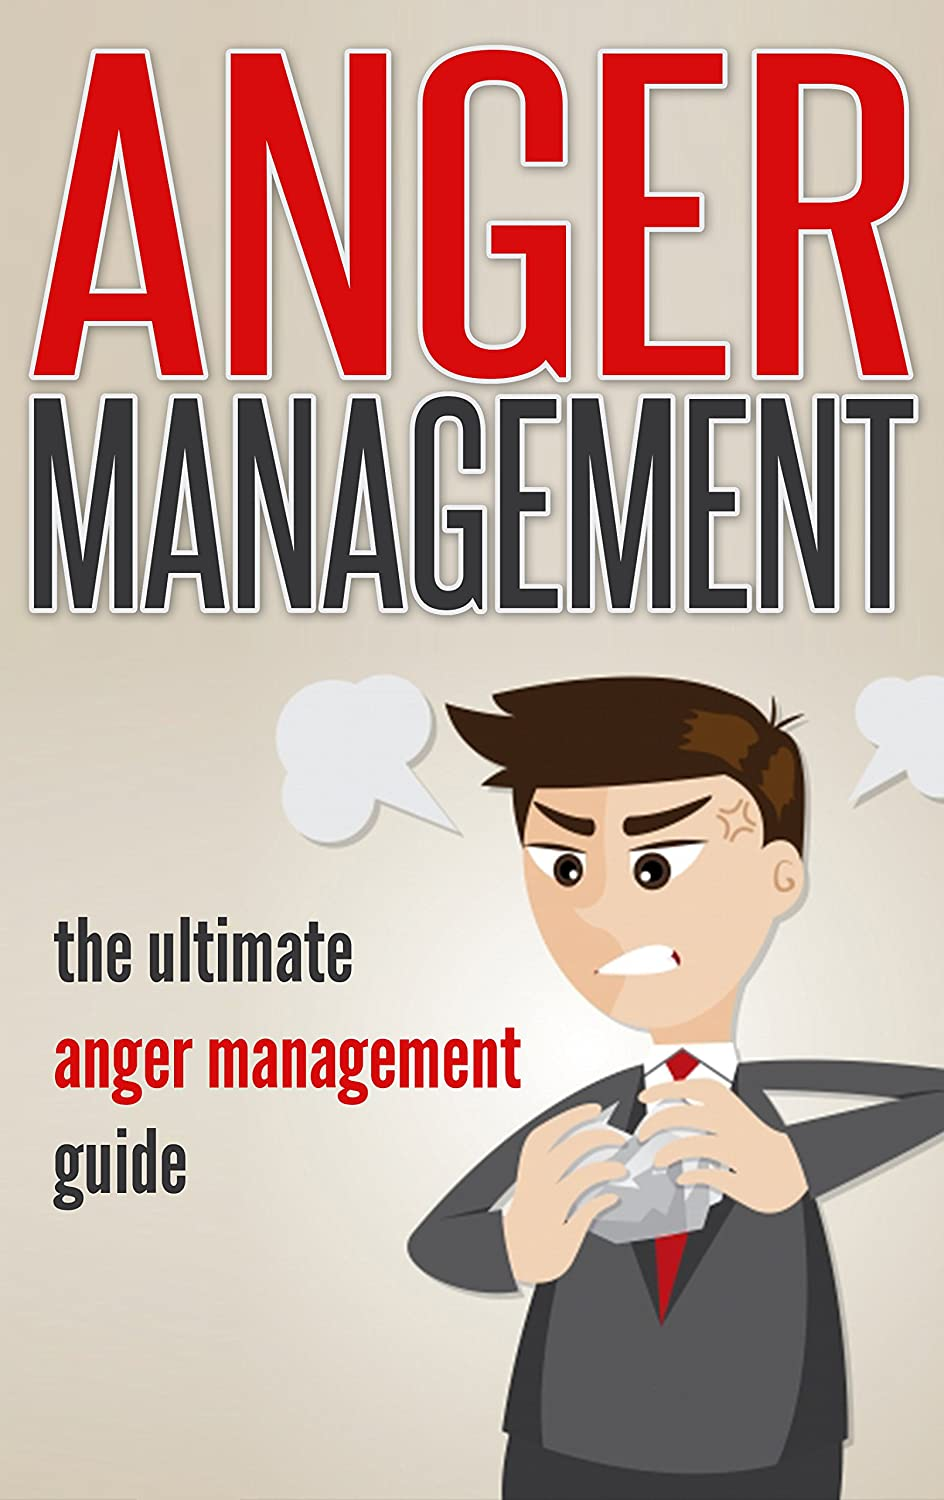 Anger Management: The Ultimate Anger Management Guide